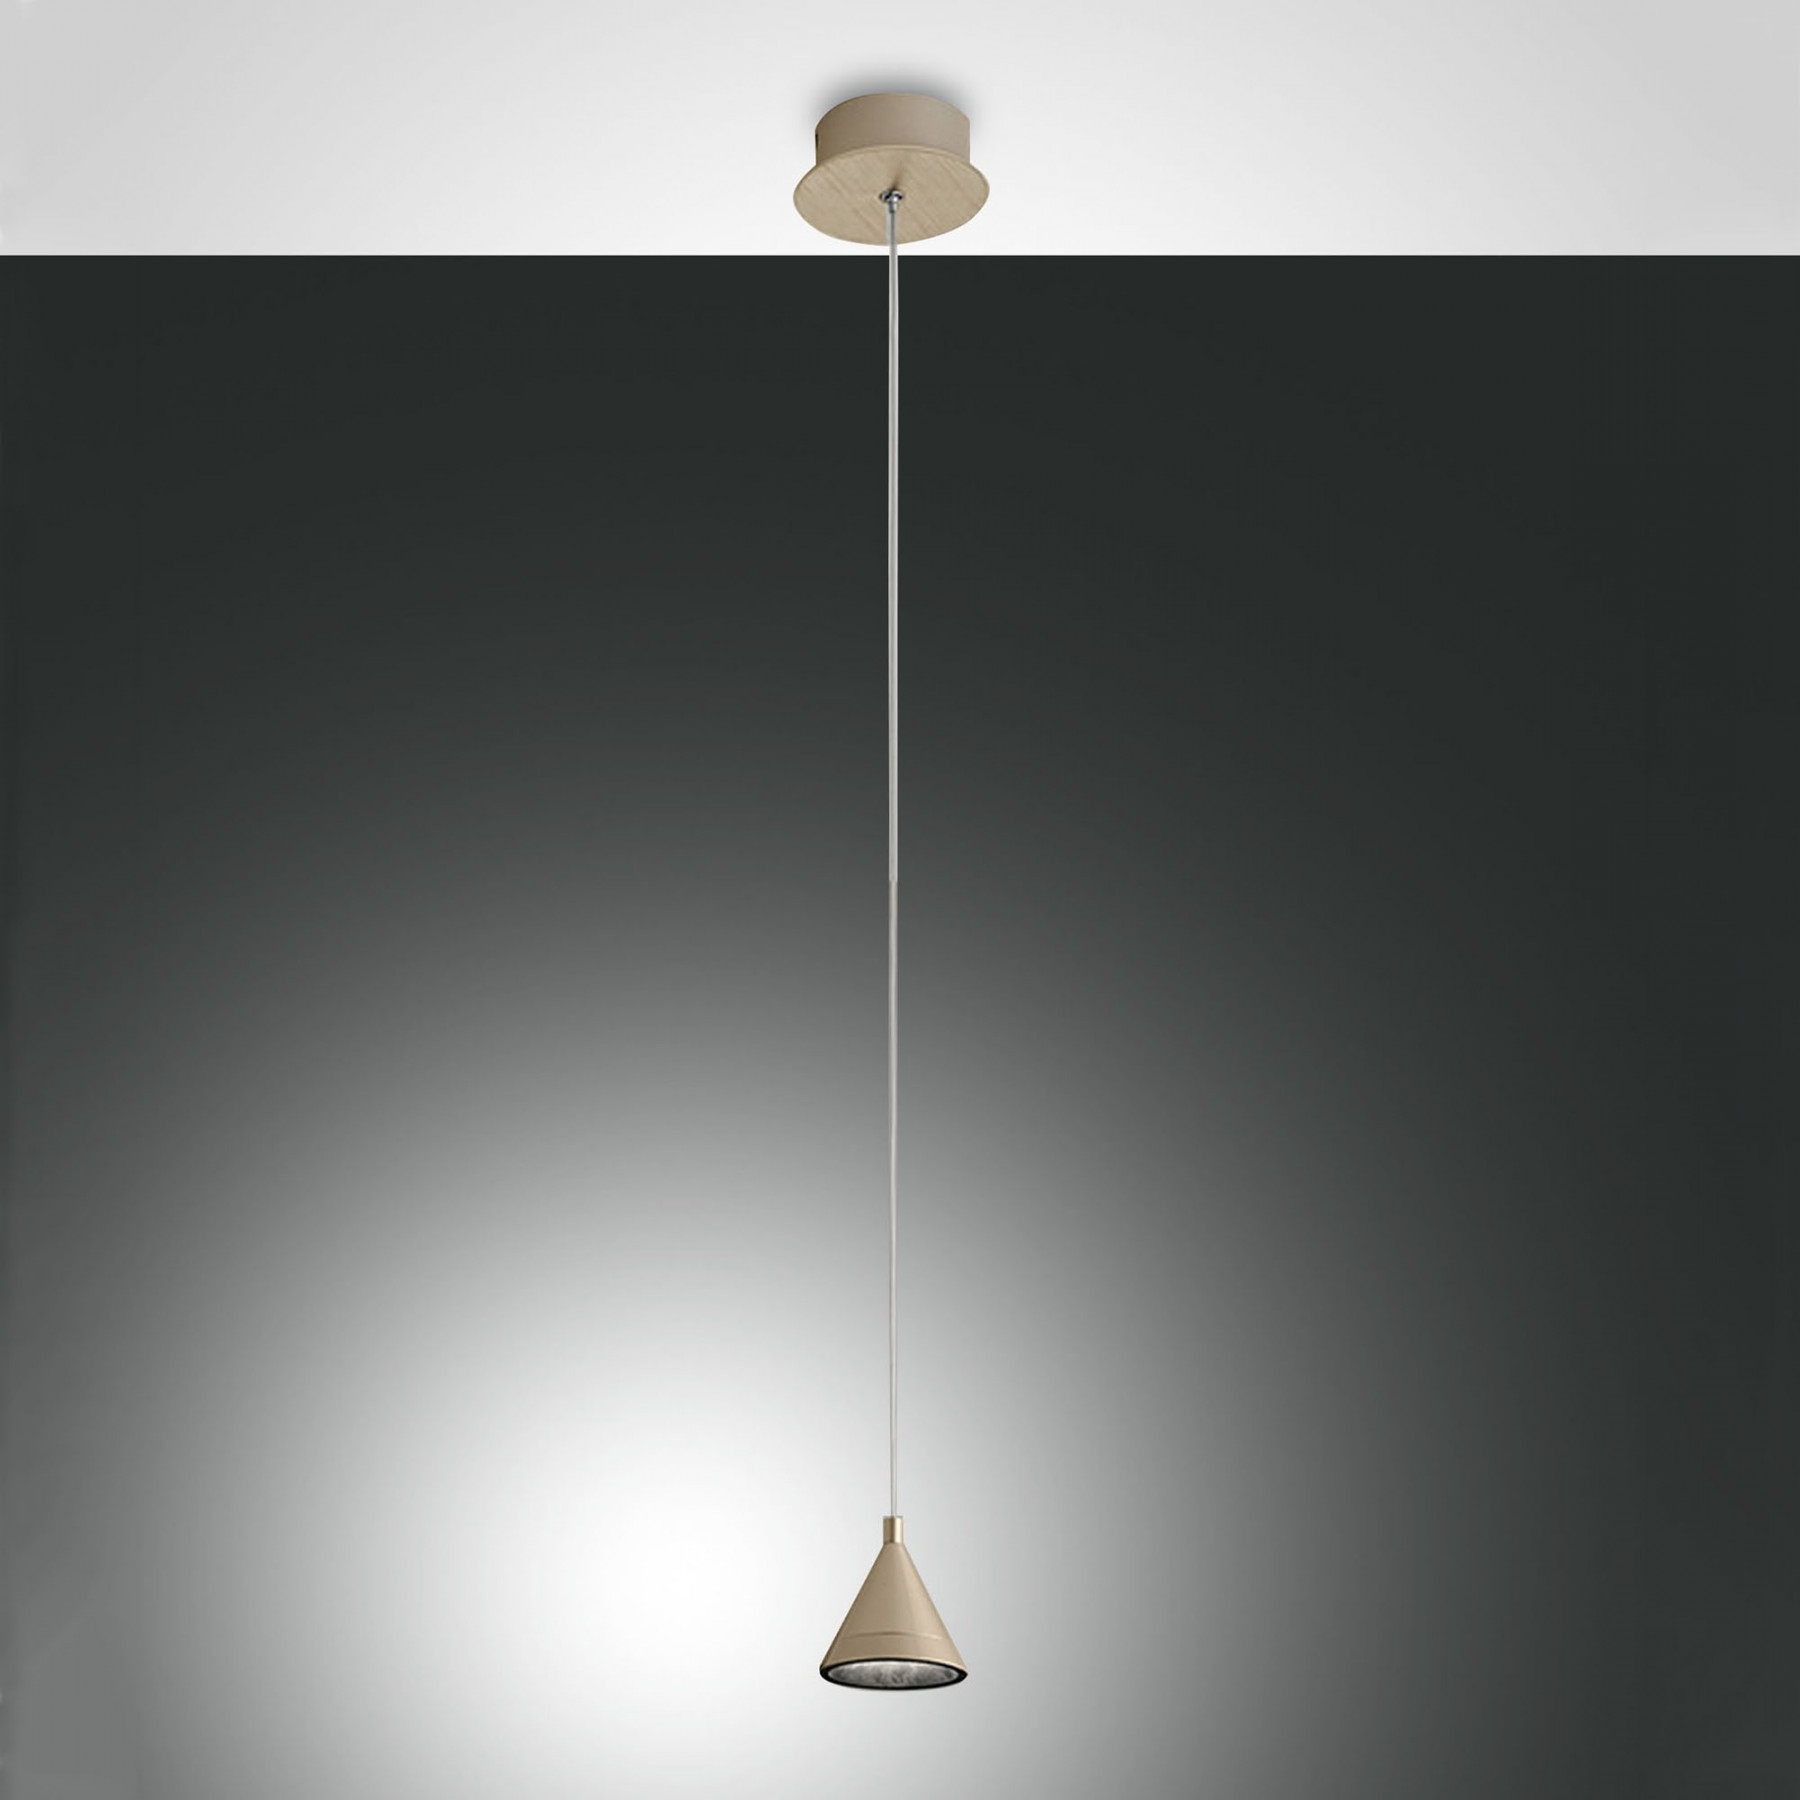 Guro 1 Light Cone Pendants Pertaining To Latest Fabas Luce Delta Led Ceiling Pendant Light (View 10 of 25)